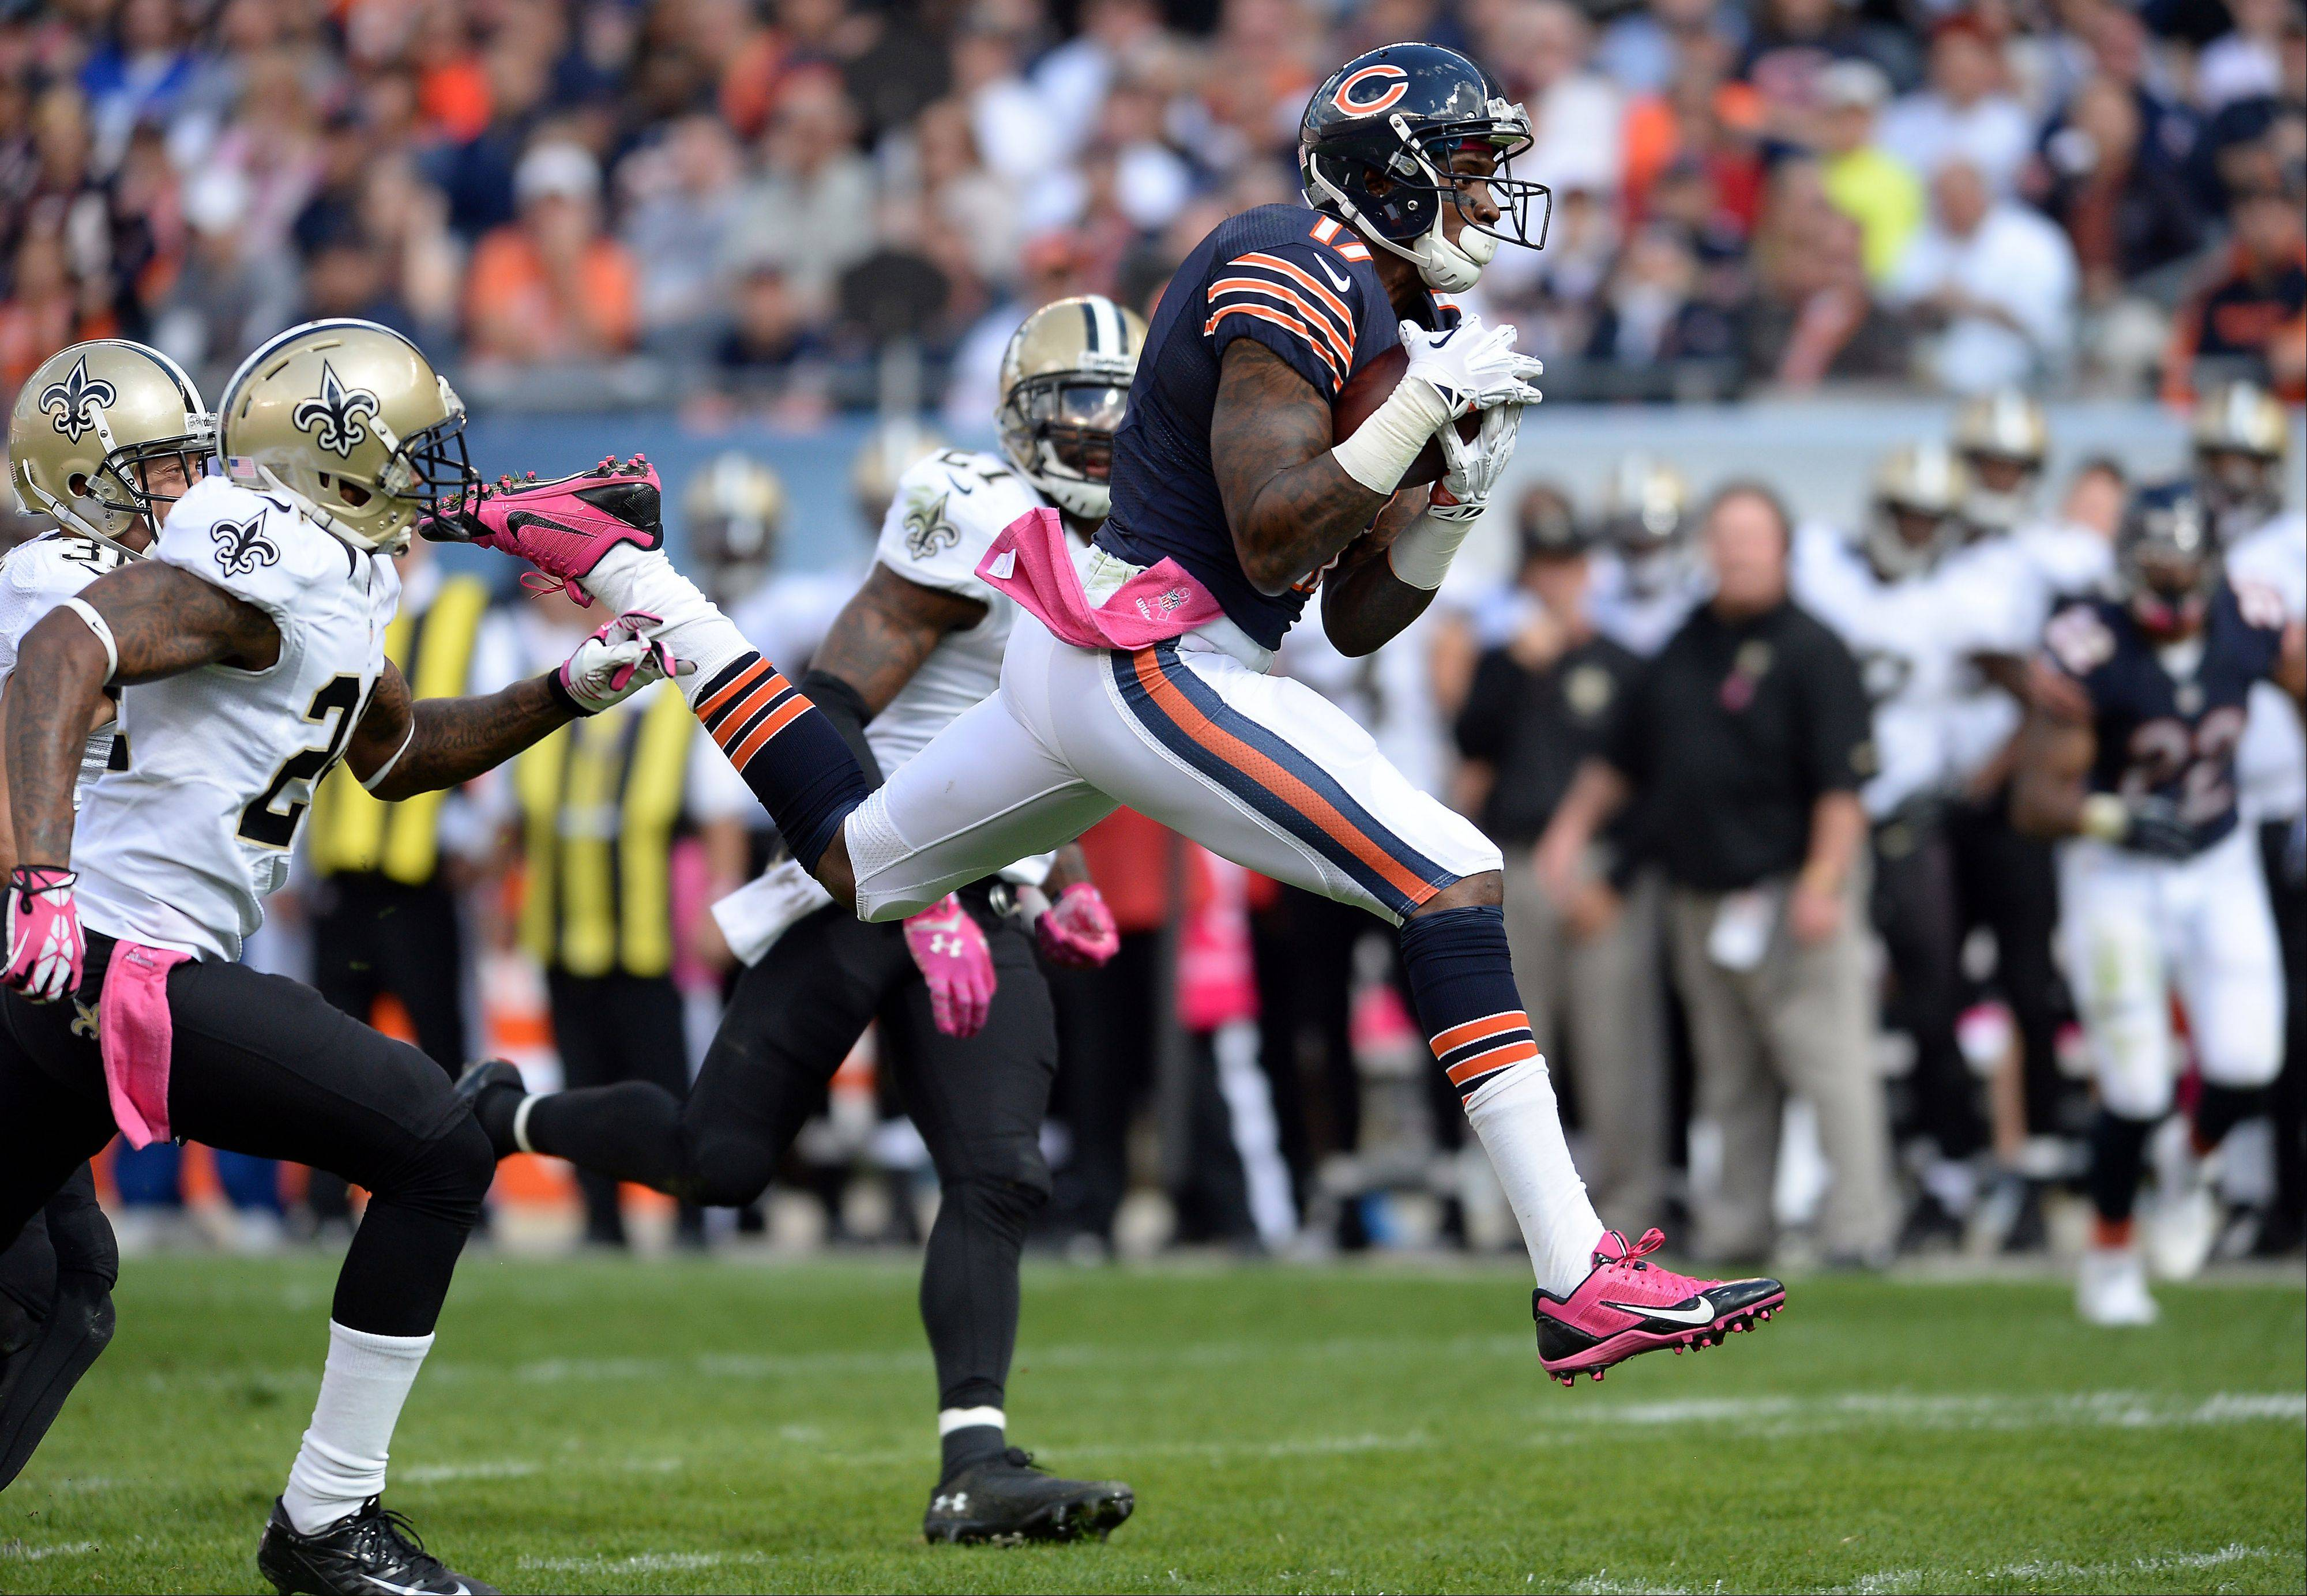 Bears' Jeffery lets his play do the talking